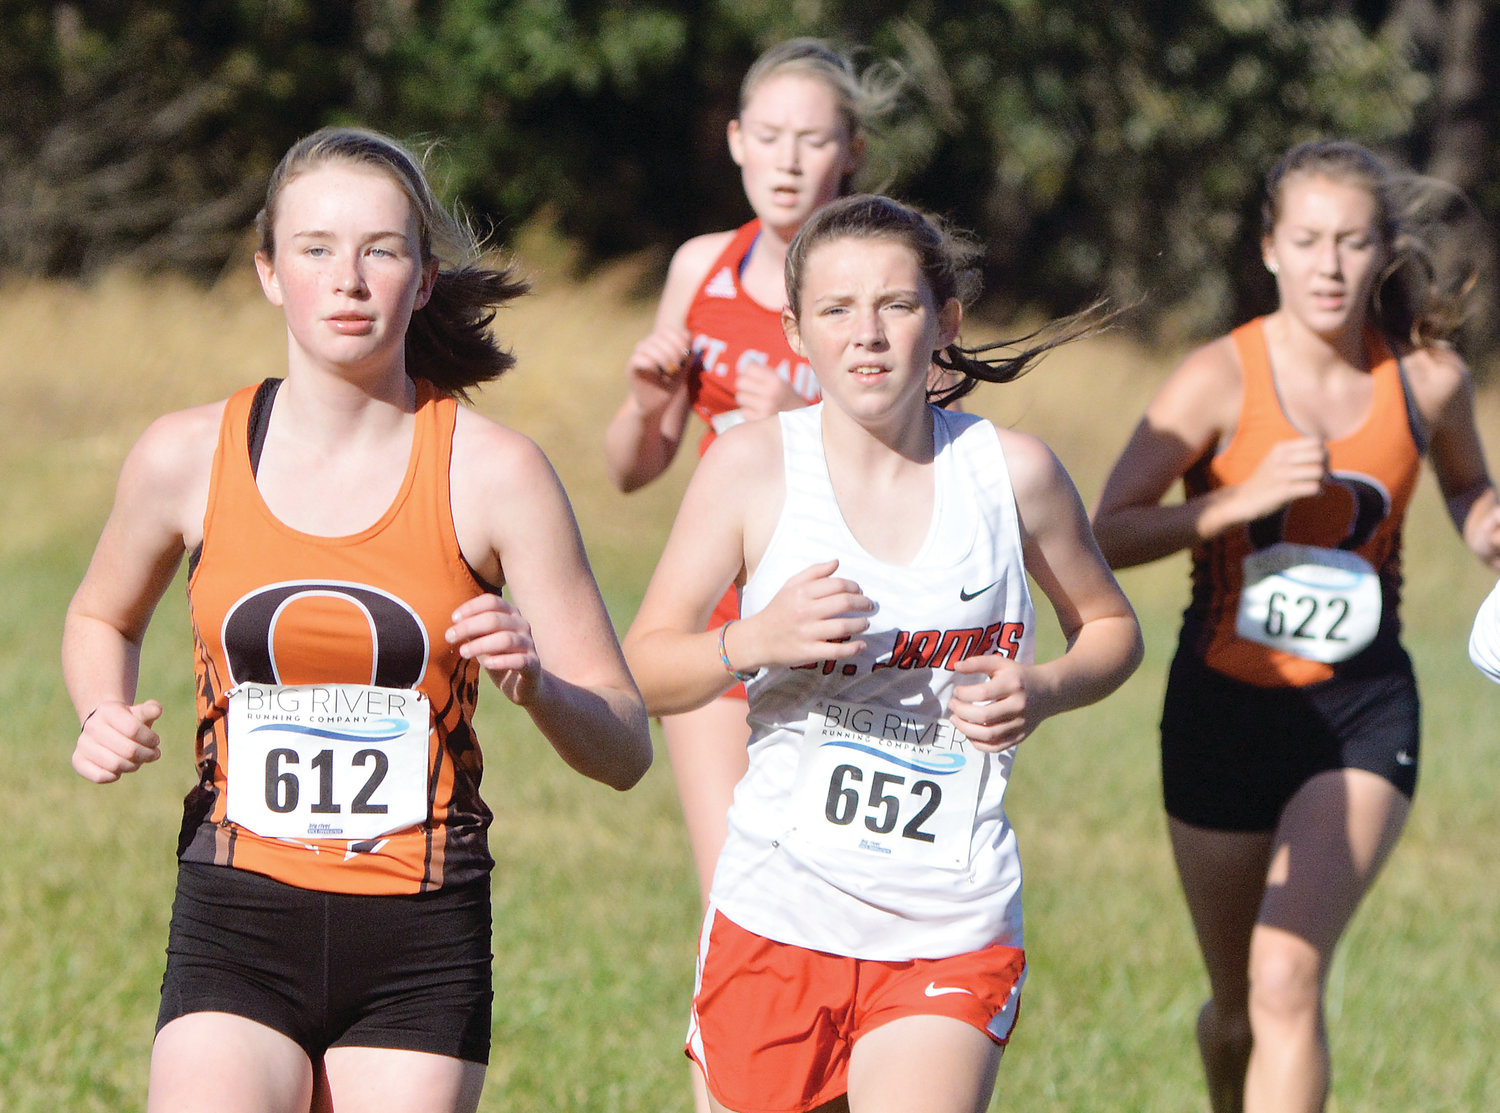 Kiera Finn (far left) leads the front of the pack during the junior varsity girl's race last Tuesday at the Four Rivers Conference (FRC) Cross Country meet held south of St. James at Maramec Spring Park.